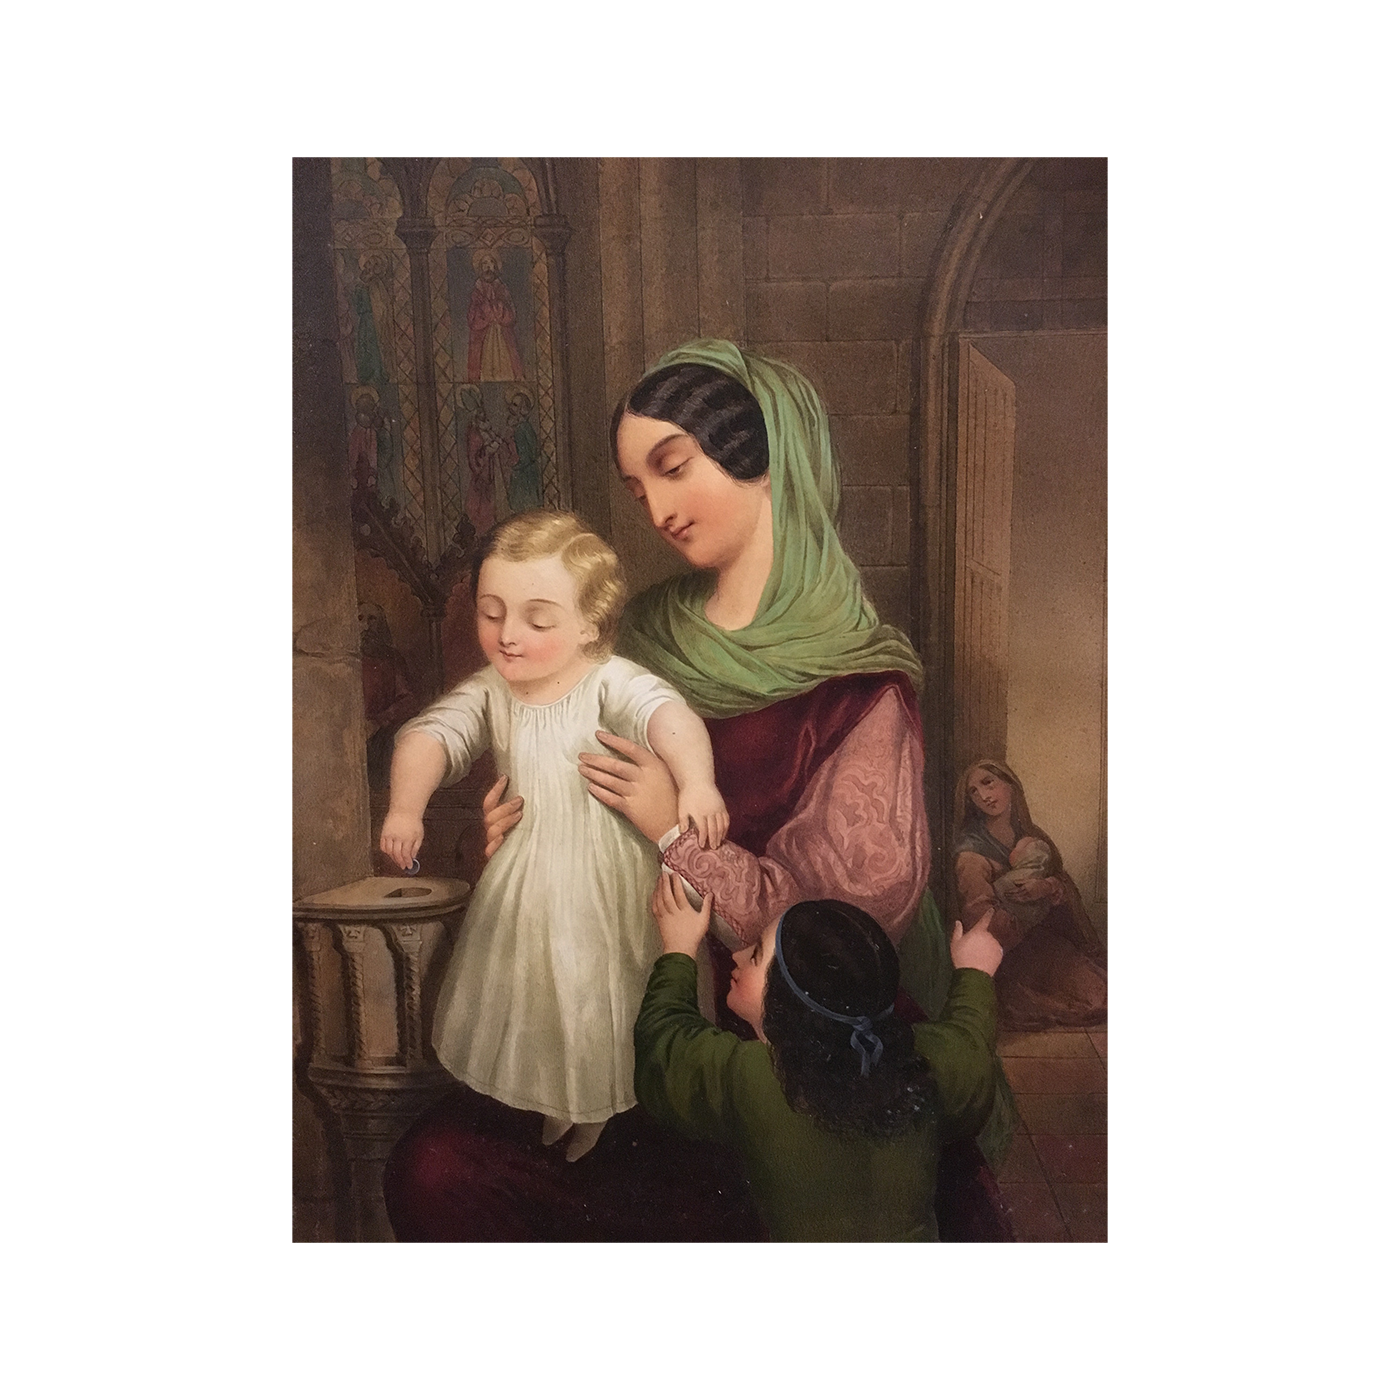 Heloise Suzanne Leloir [1820-1873] French Illustrator Mother and Child, Adolf Sheer, 1849 watercolor 11-3/4 x 14-3/4 inches